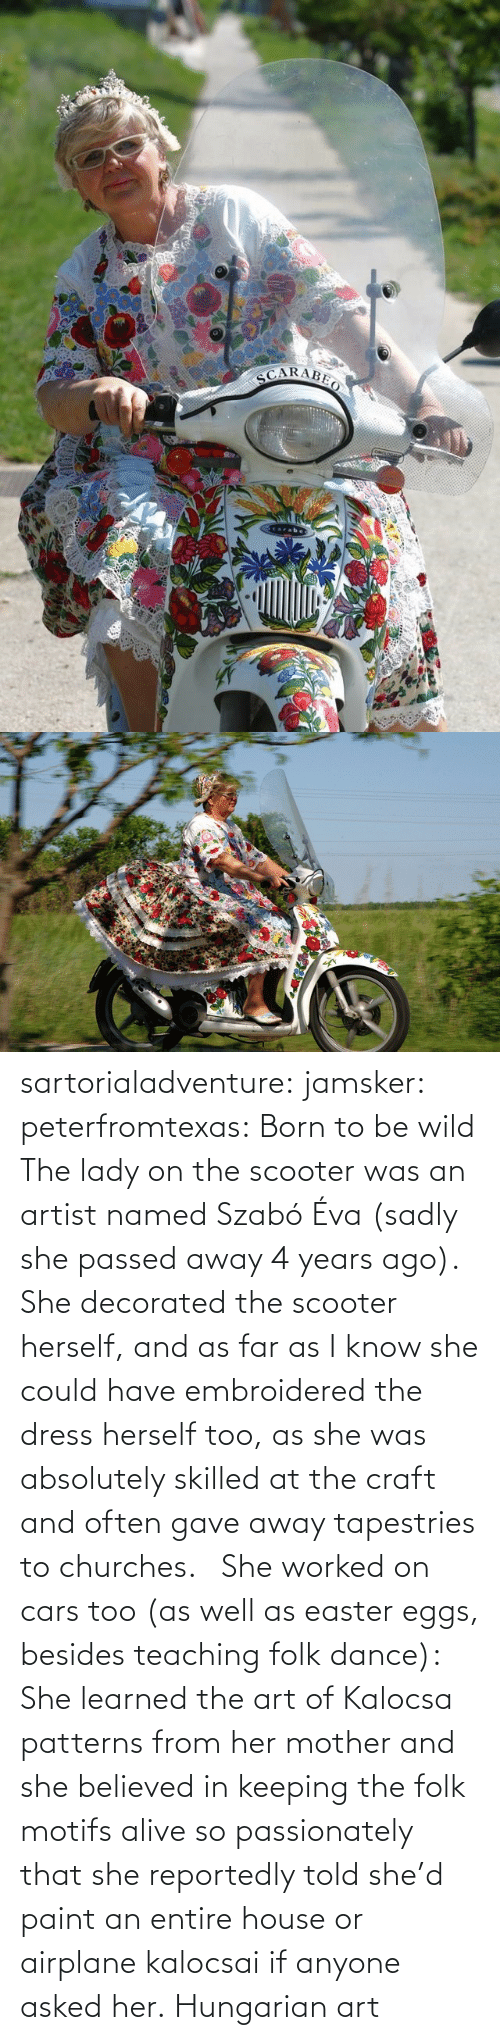 img: sartorialadventure: jamsker:  peterfromtexas: Born to be wild The lady on the scooter was an artist named Szabó Éva (sadly she passed away 4 years ago). She decorated the scooter herself, and as far as I know she could have embroidered the dress herself too, as she was absolutely skilled at the craft and often gave away tapestries to churches.   She worked on cars too (as well as easter eggs, besides teaching folk dance): She learned the art of Kalocsa patterns from her mother and she believed in keeping the folk motifs alive so passionately that she reportedly told she'd paint an entire house or airplane kalocsai if anyone asked her.  Hungarian art